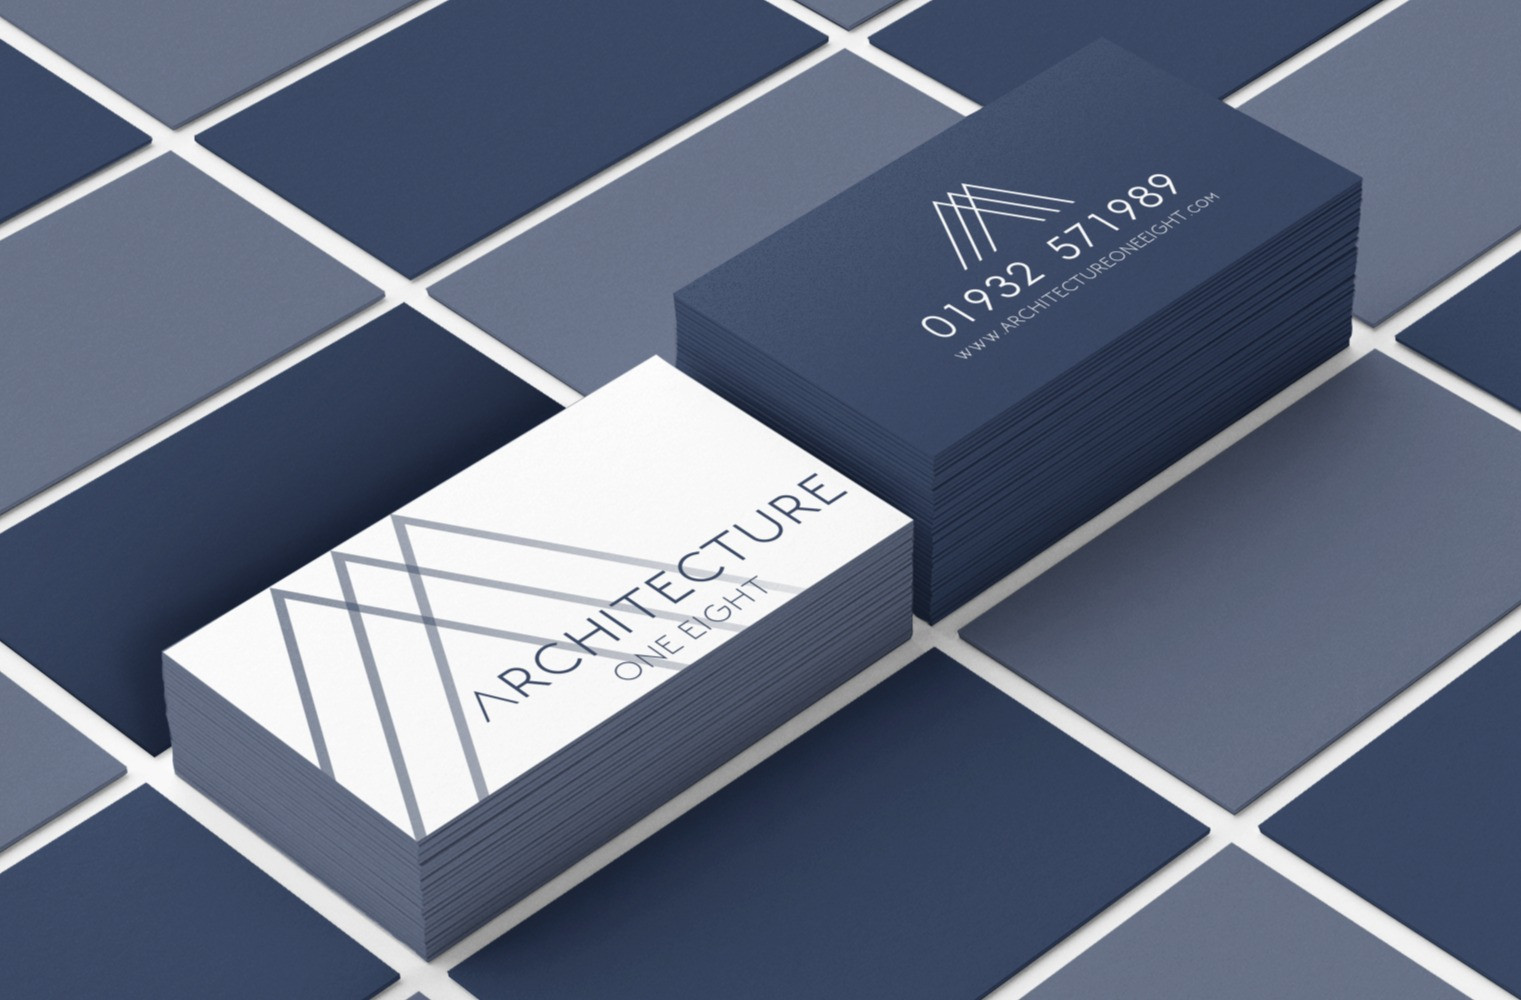 mockup-of-two-business-card-piles-lying-